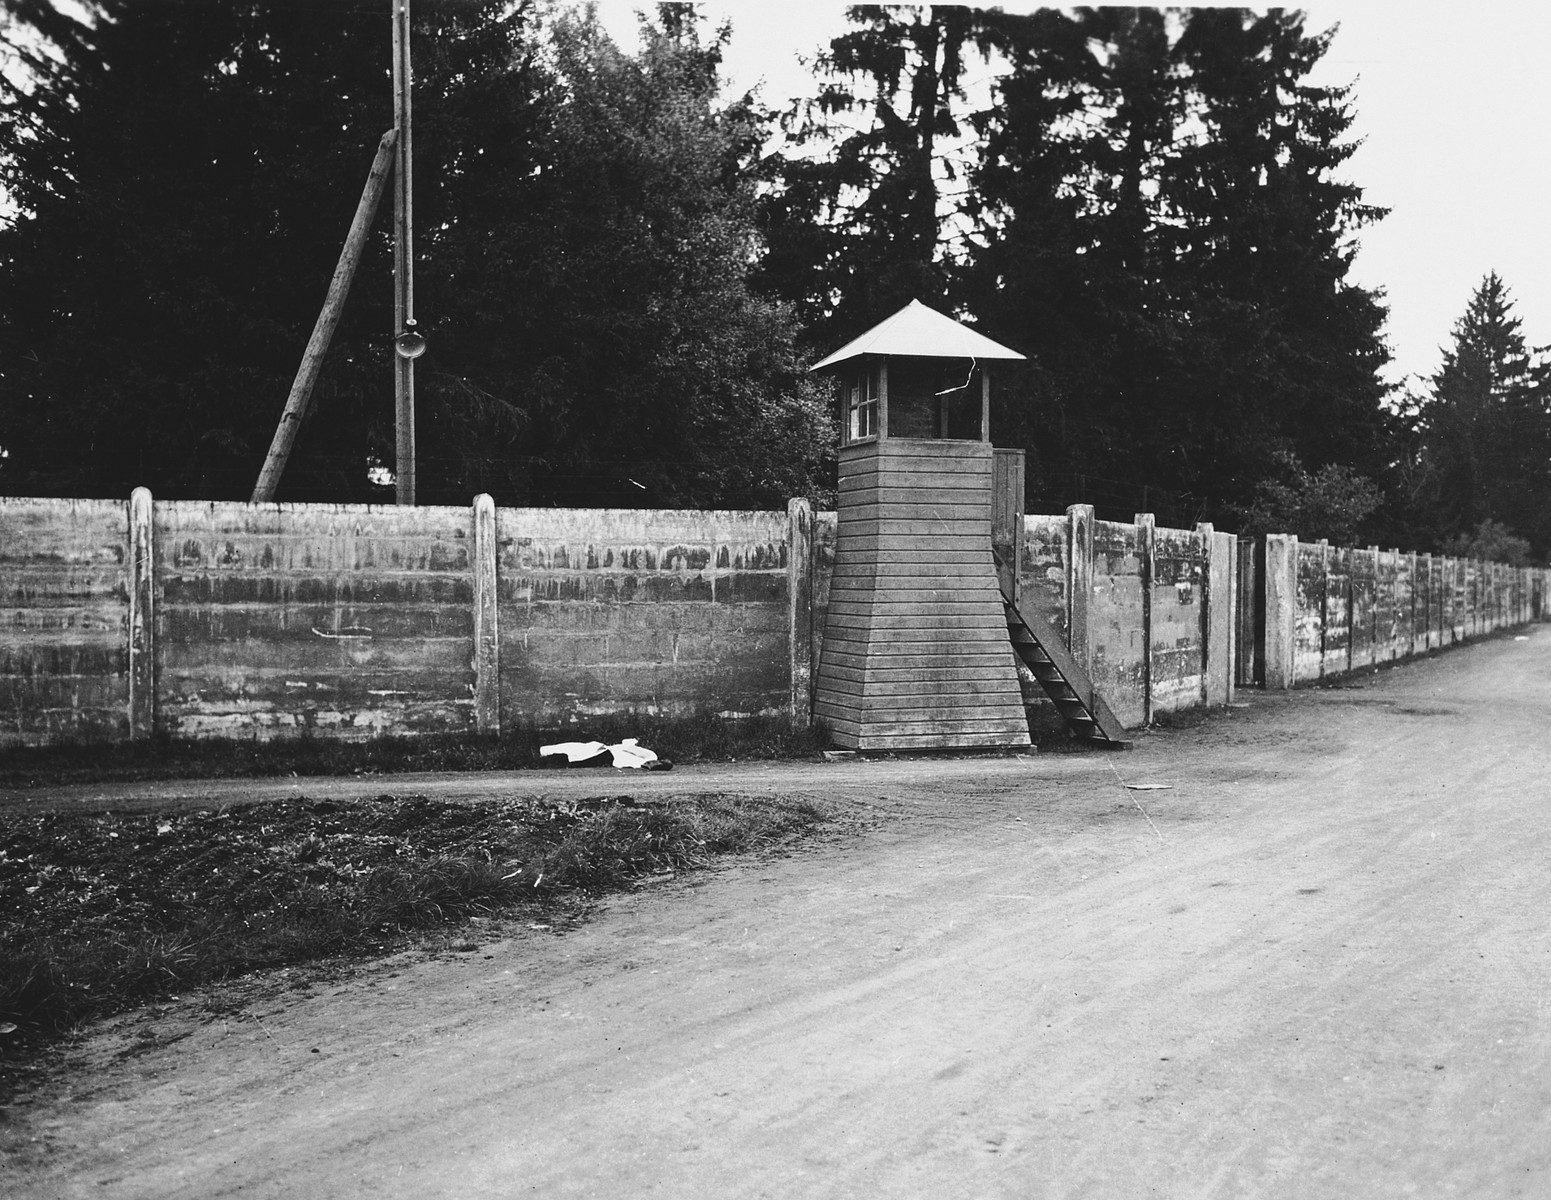 View of a wall and guard tower in the Dachau concentration camp.